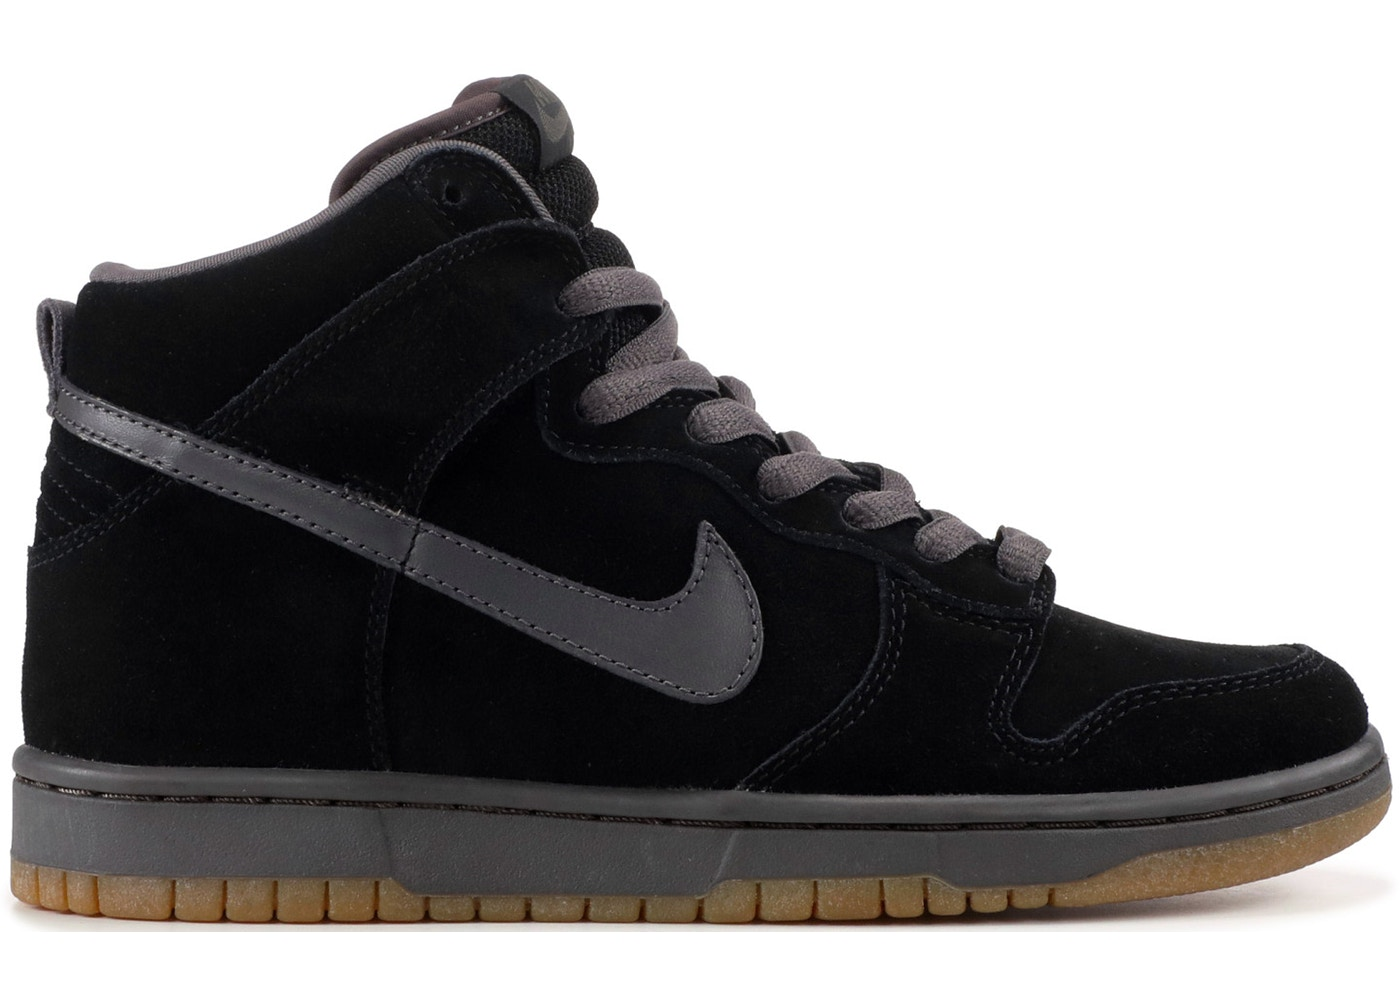 22c3e7dd83132 Nike SB Dunk High Black Midnight Fog - 305050-002